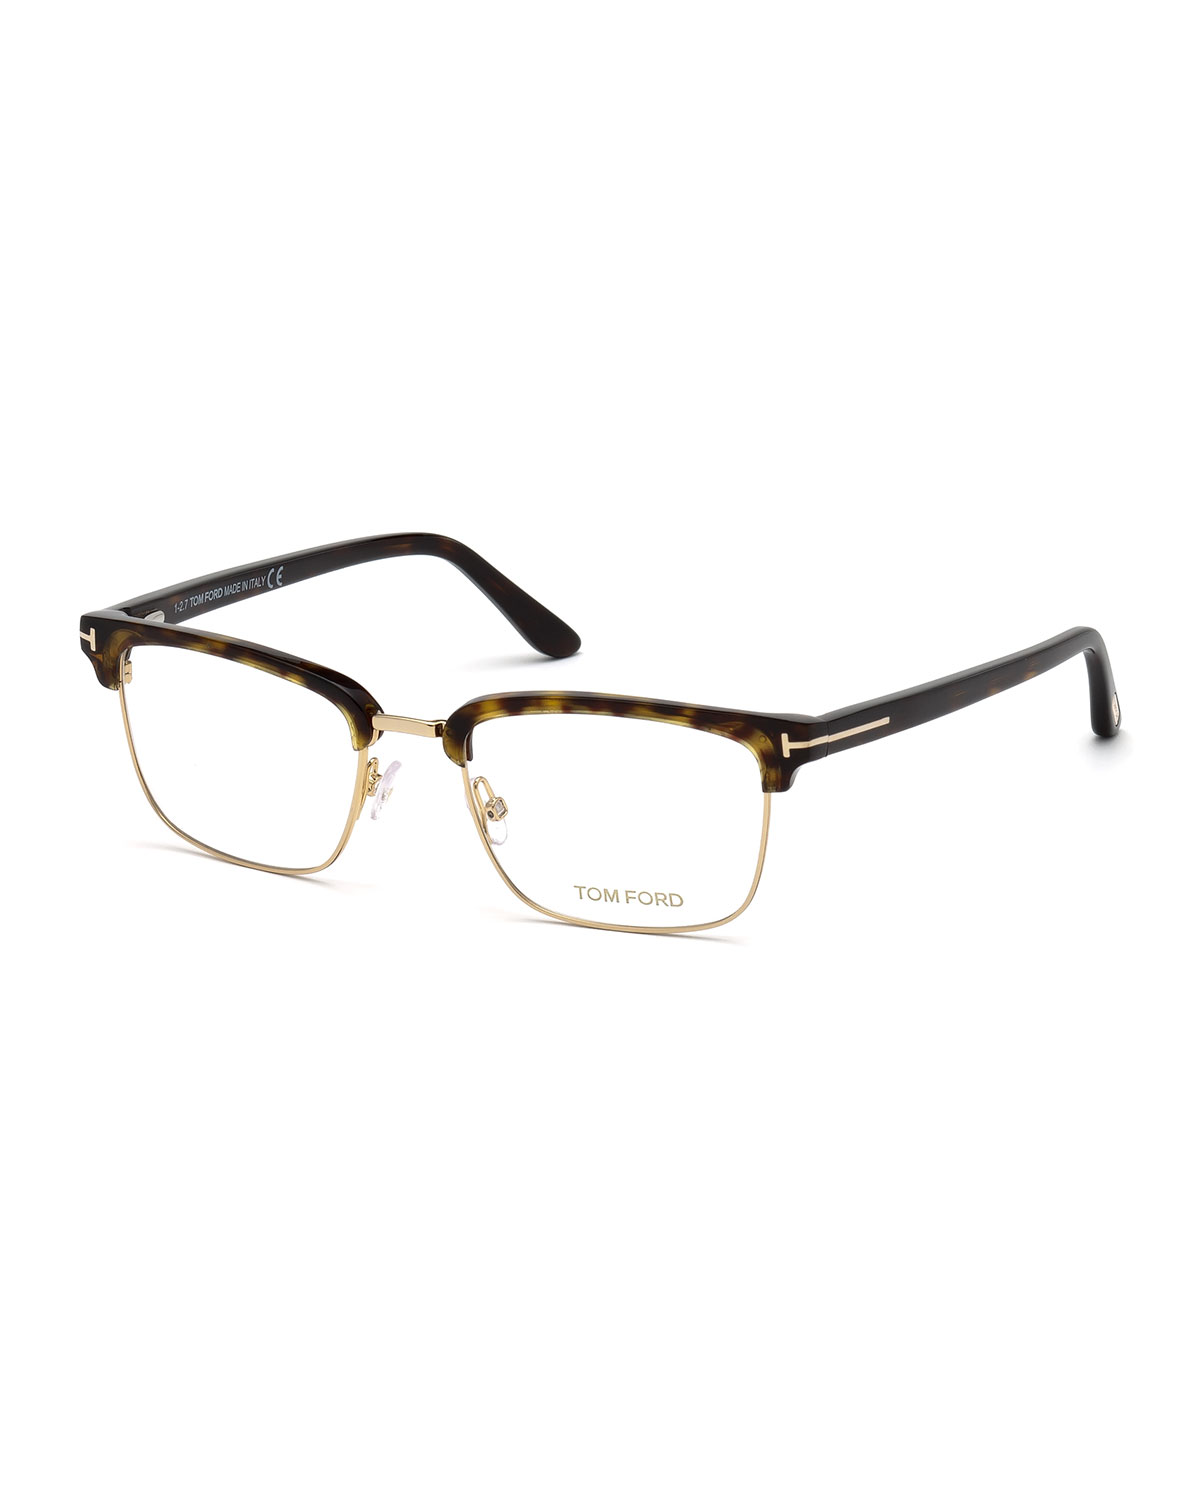 a4ea346df10 TOM FORDMen s Square Metal Plastic Half-Rim Optical Glasses - Golden  Hardware